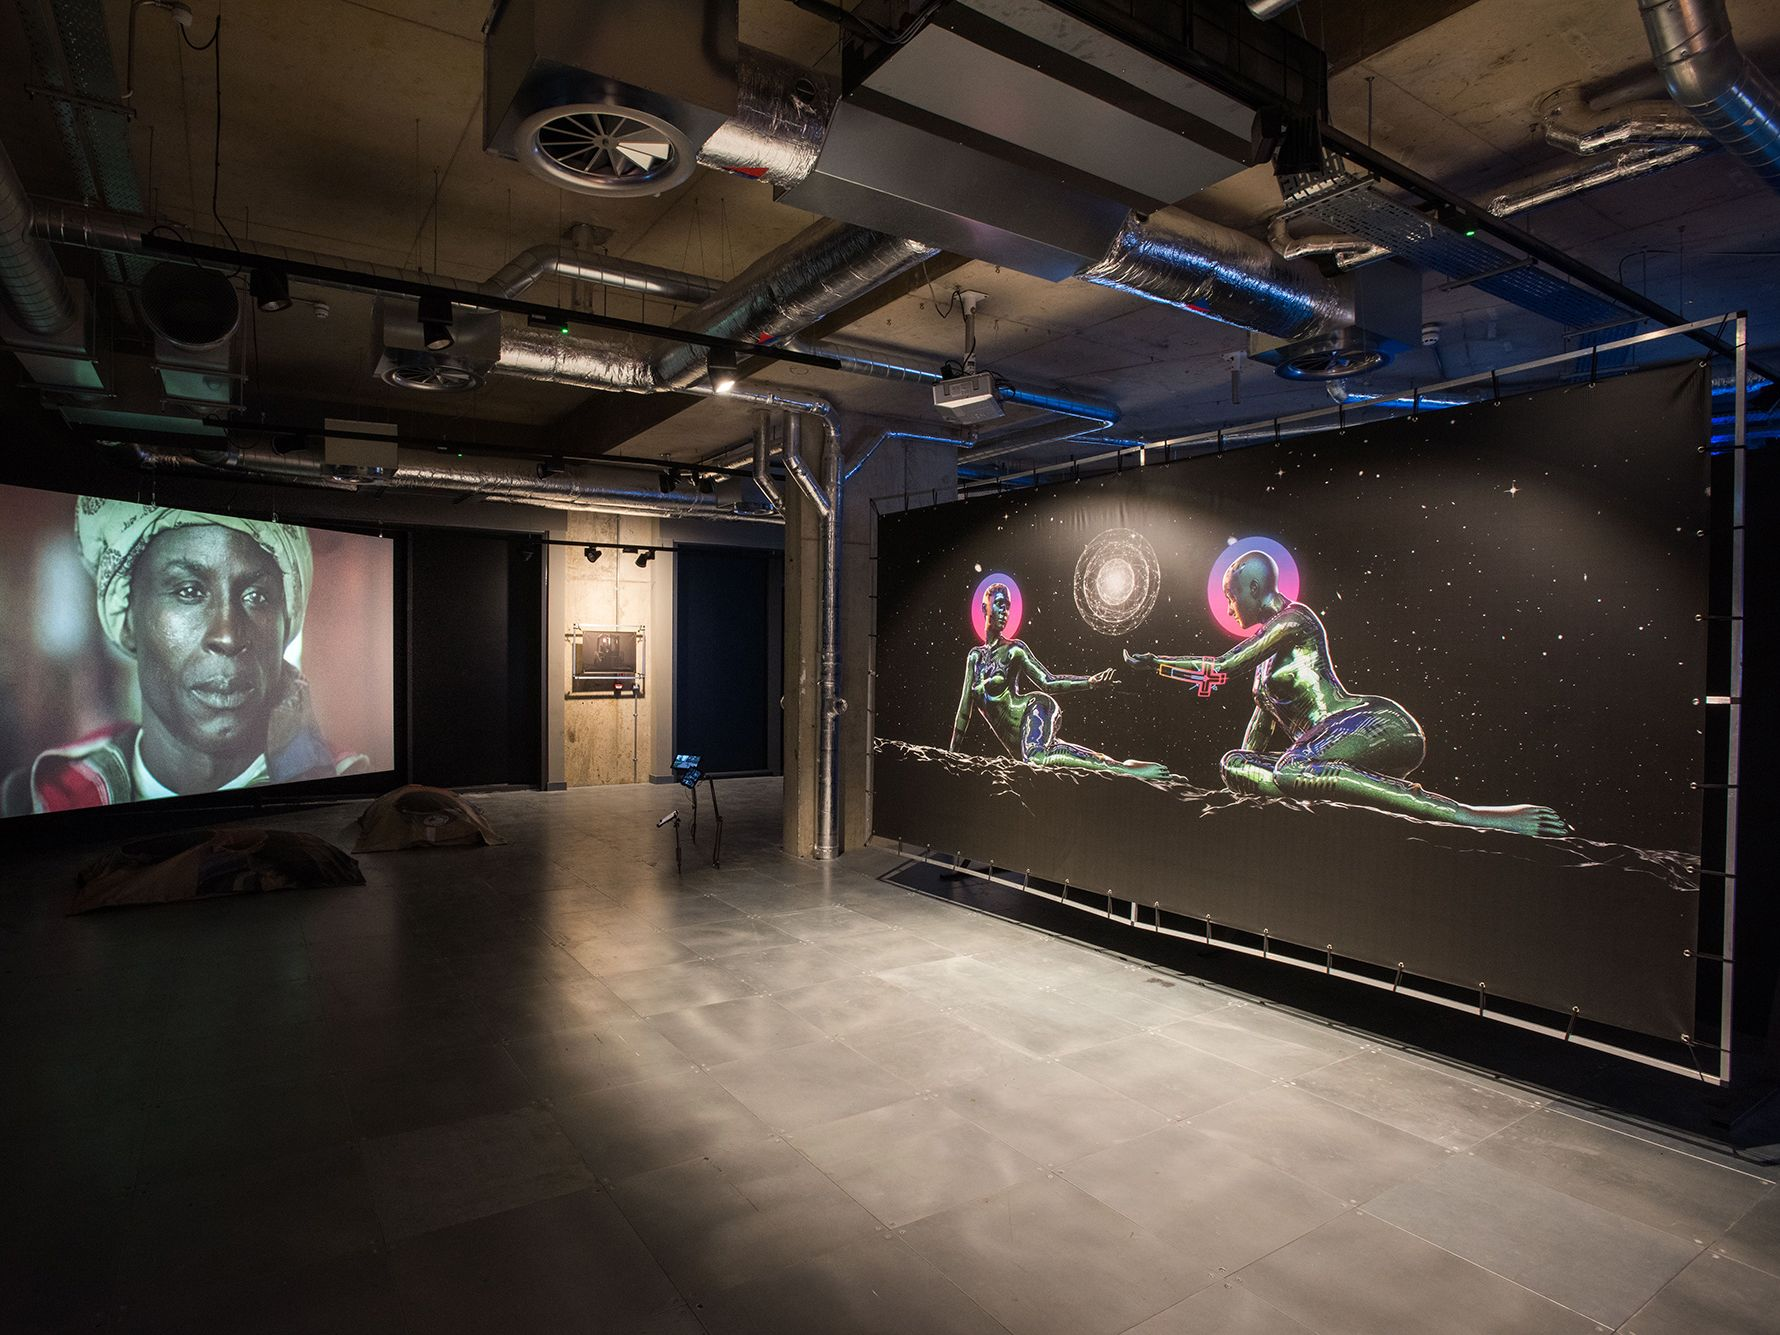 installation of exhibition, multiple screens